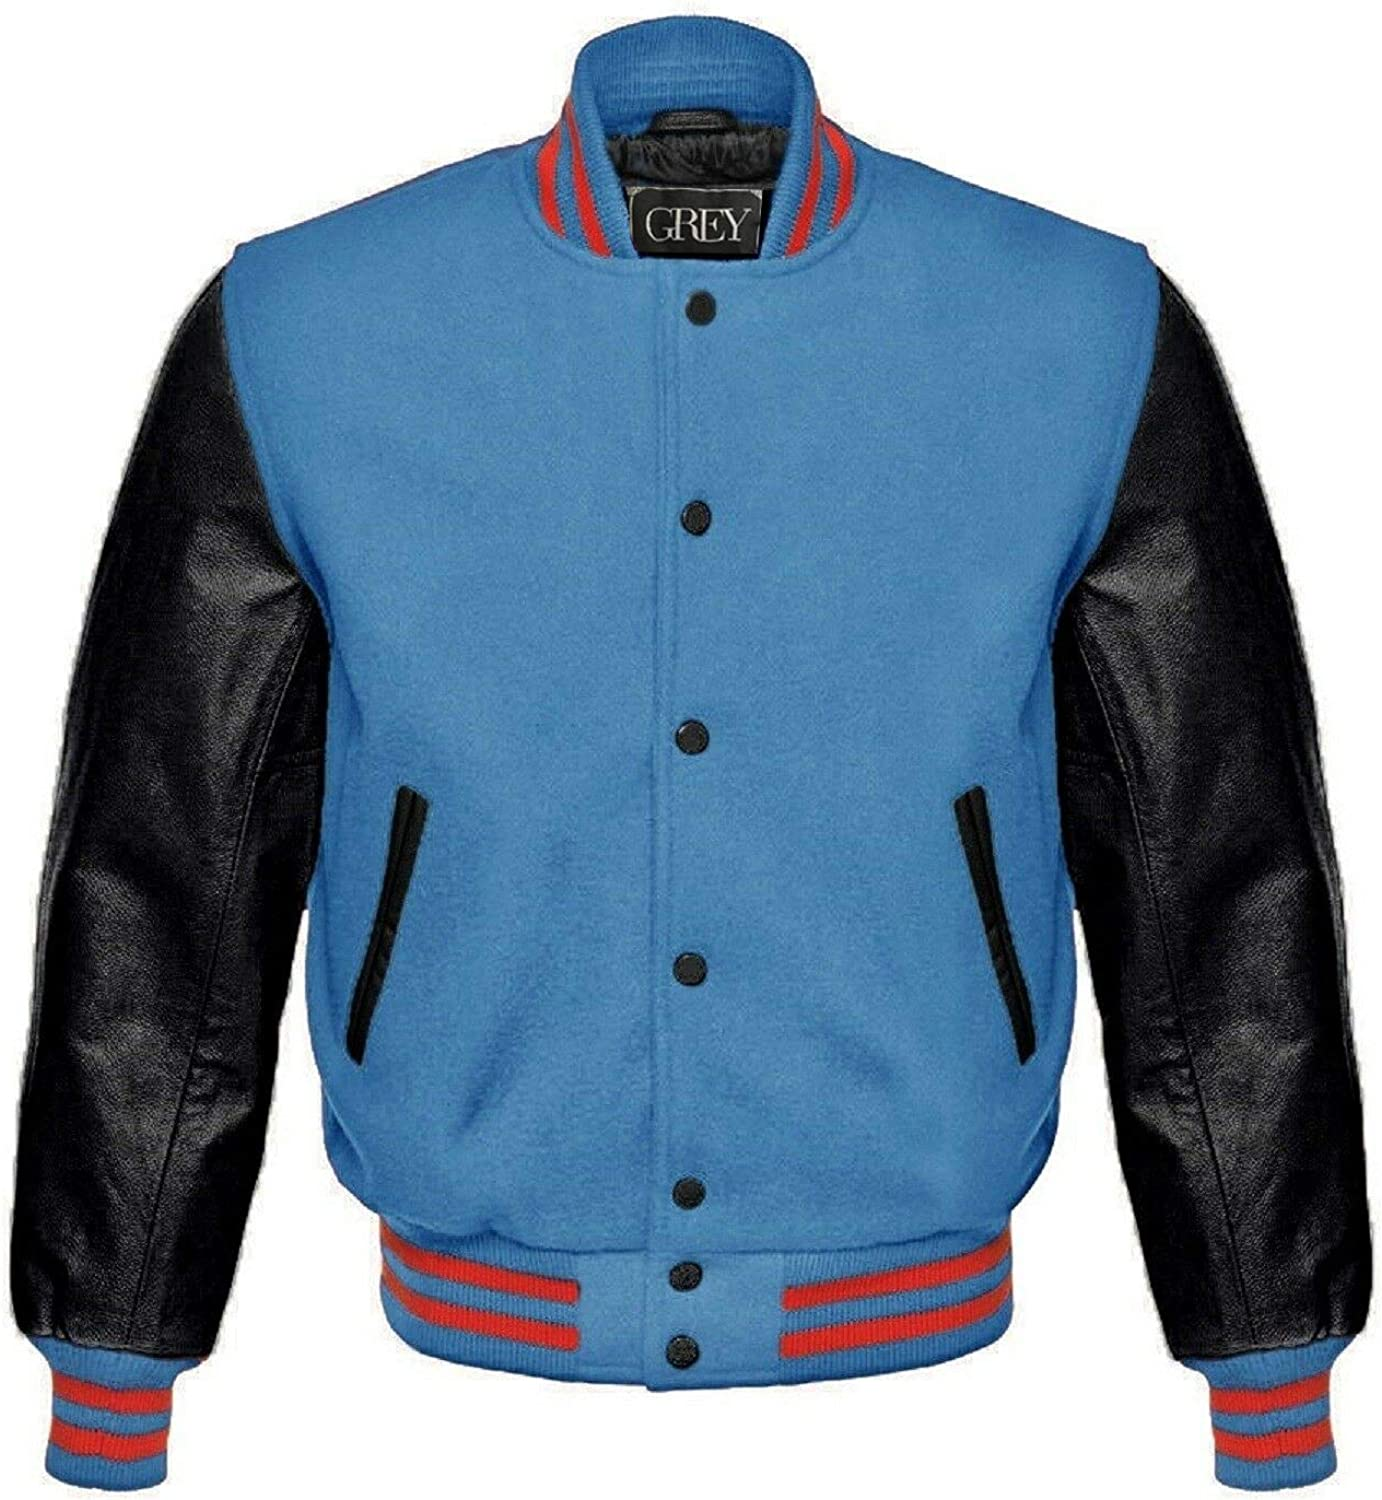 GREY Brand Varsity Jacket, Wool Body with Leather Arms Letterman Baseball Unique & Stylish (7XL) (XS, Royal Blue-White/Red Strips) (M, Sky-Black)